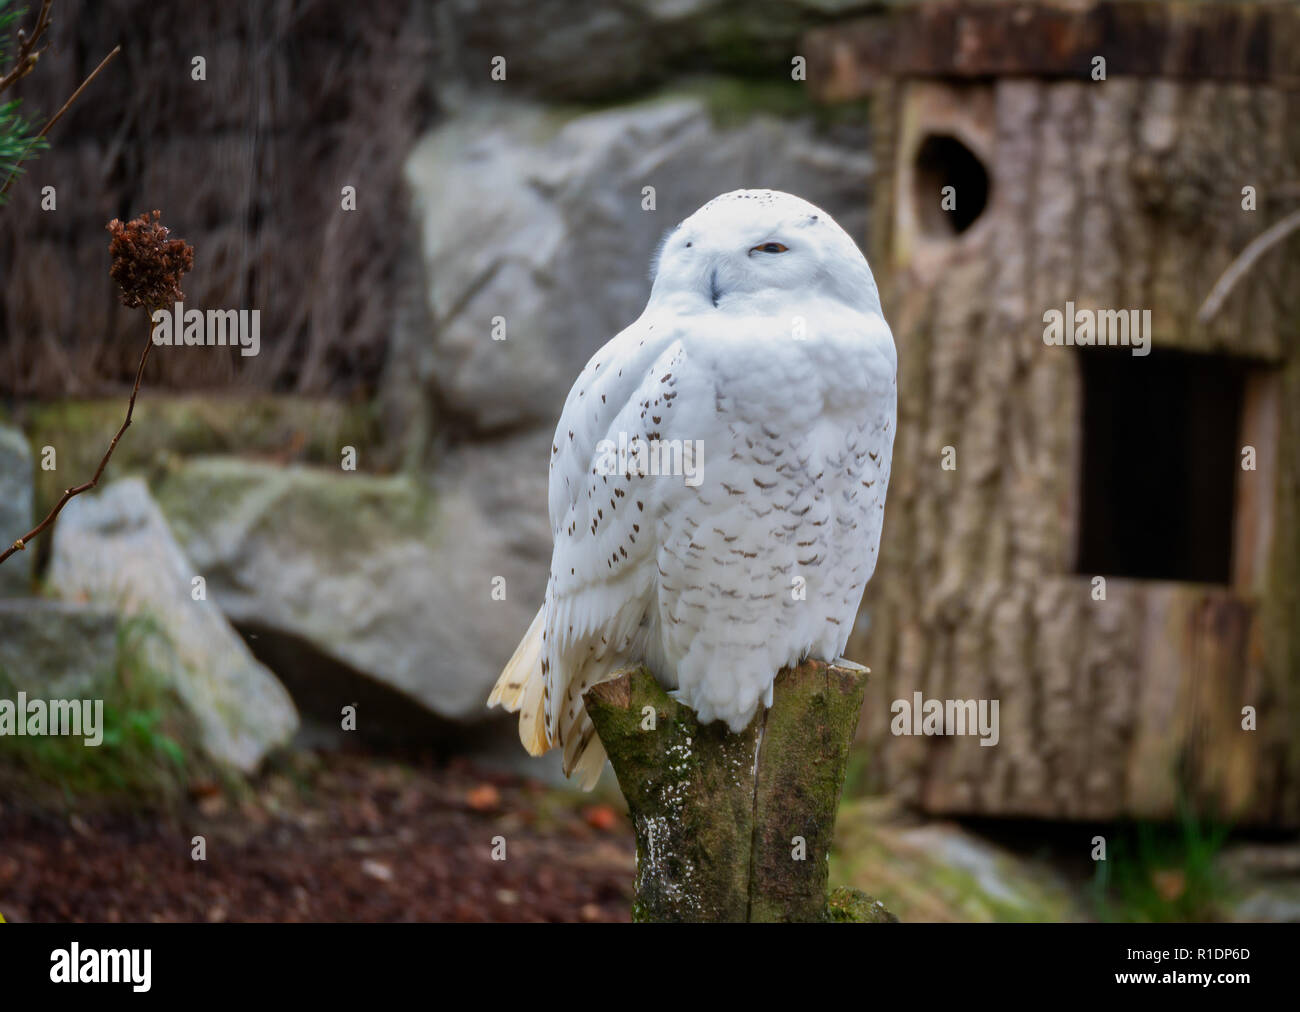 Close up Image of a white snow owl sitting on a trunk Stock Photo